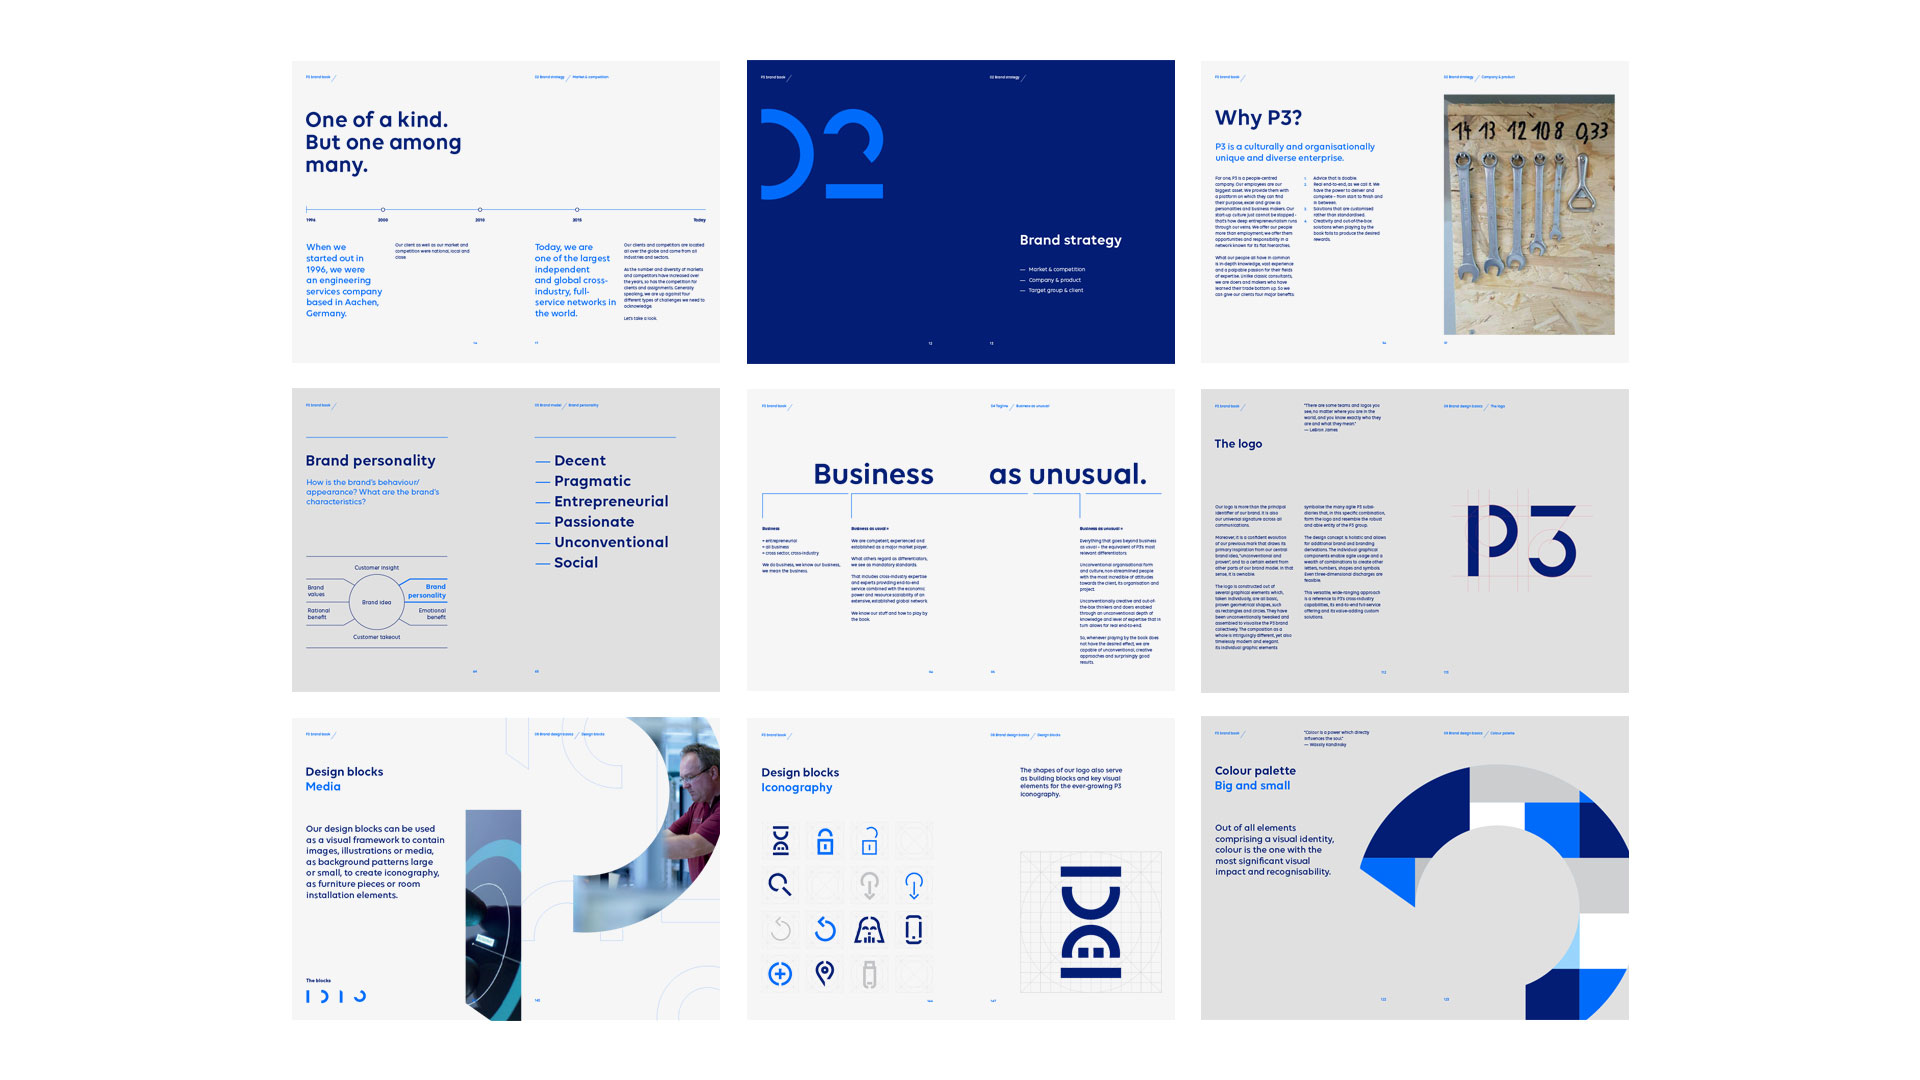 mscholz-p3-brand-book-guidelines